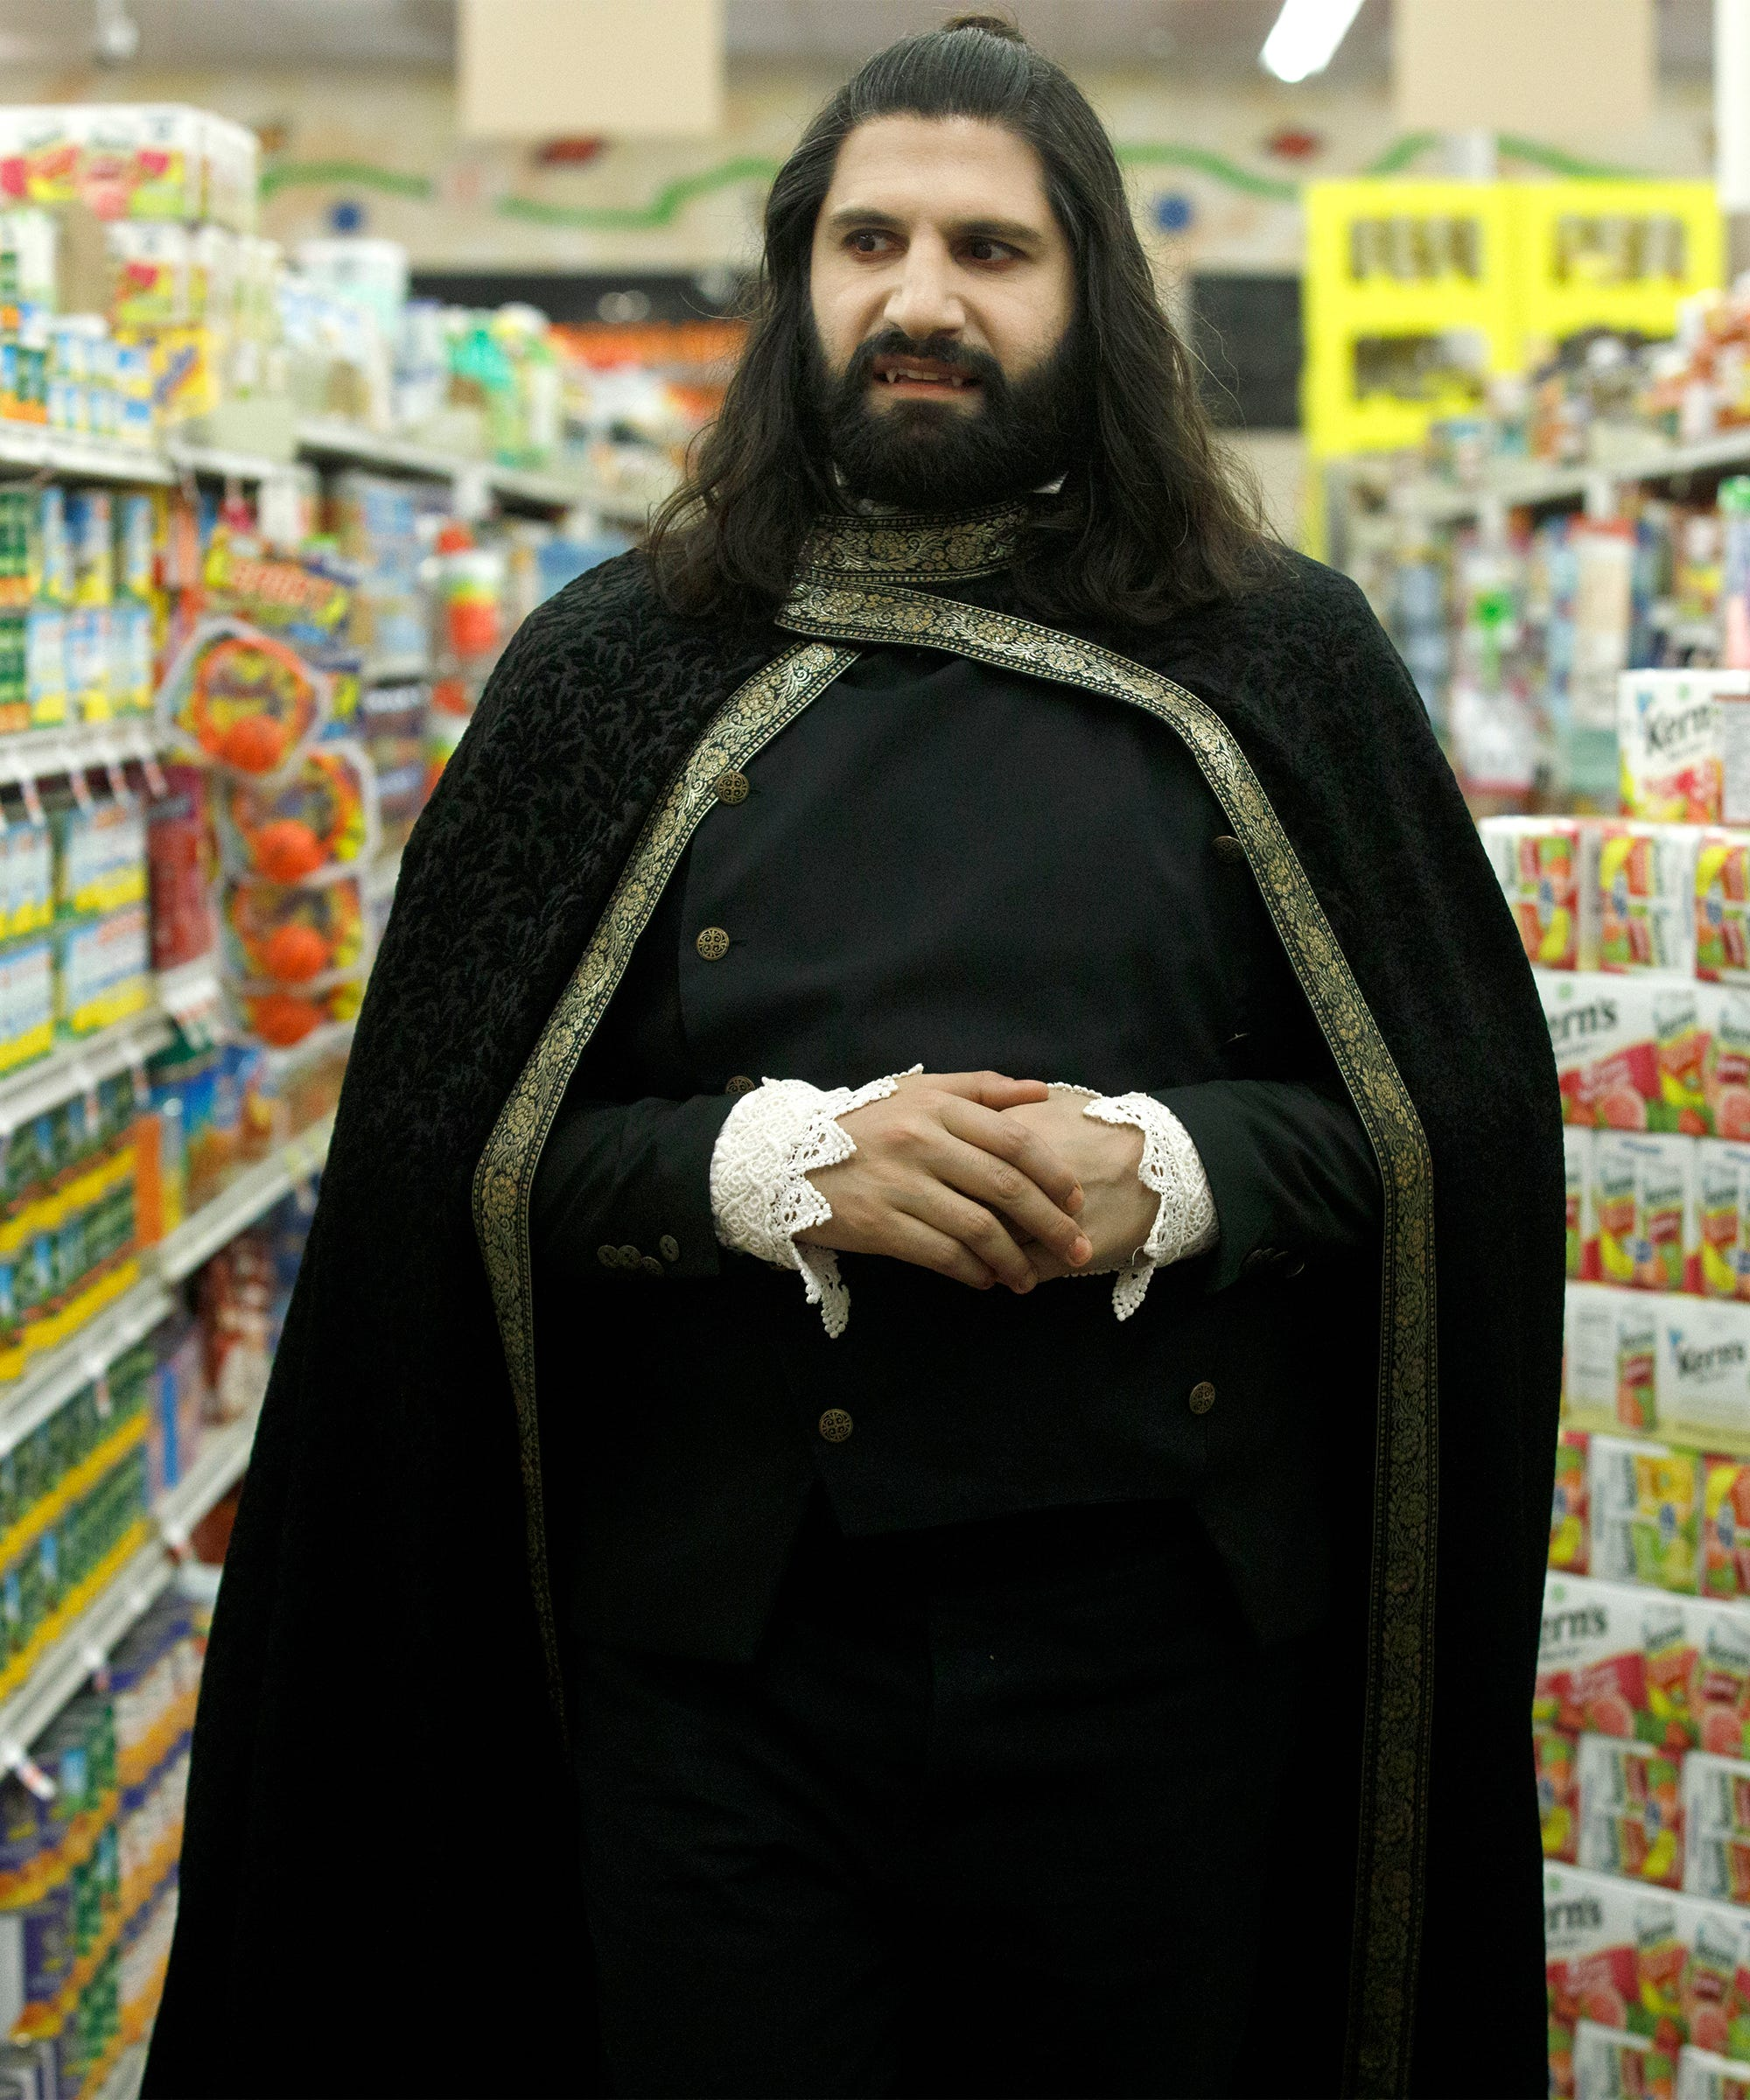 The Cast Of What We Do In The Shadows Is About To Upend The Vampire Genre